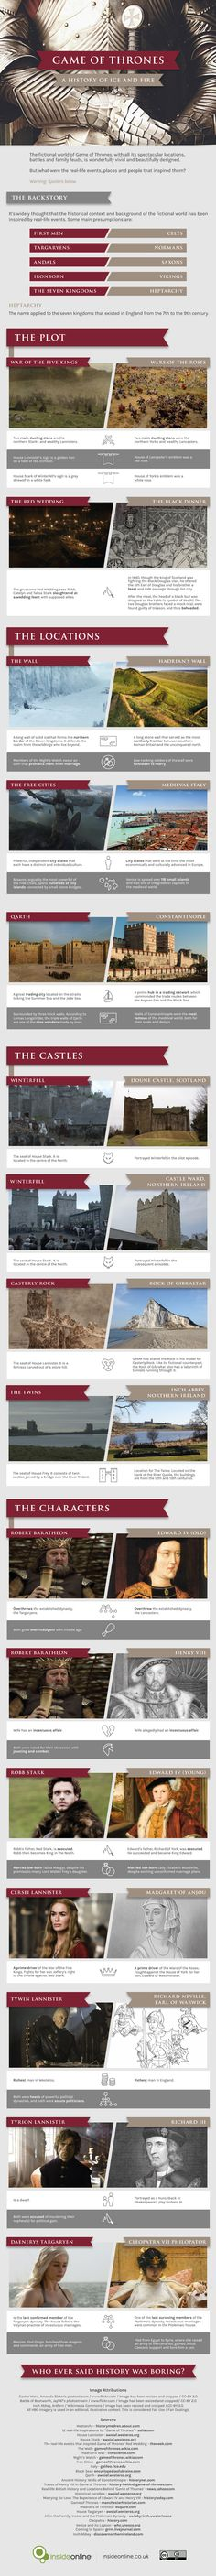 Infographic: The Real History Behind Game of Thrones